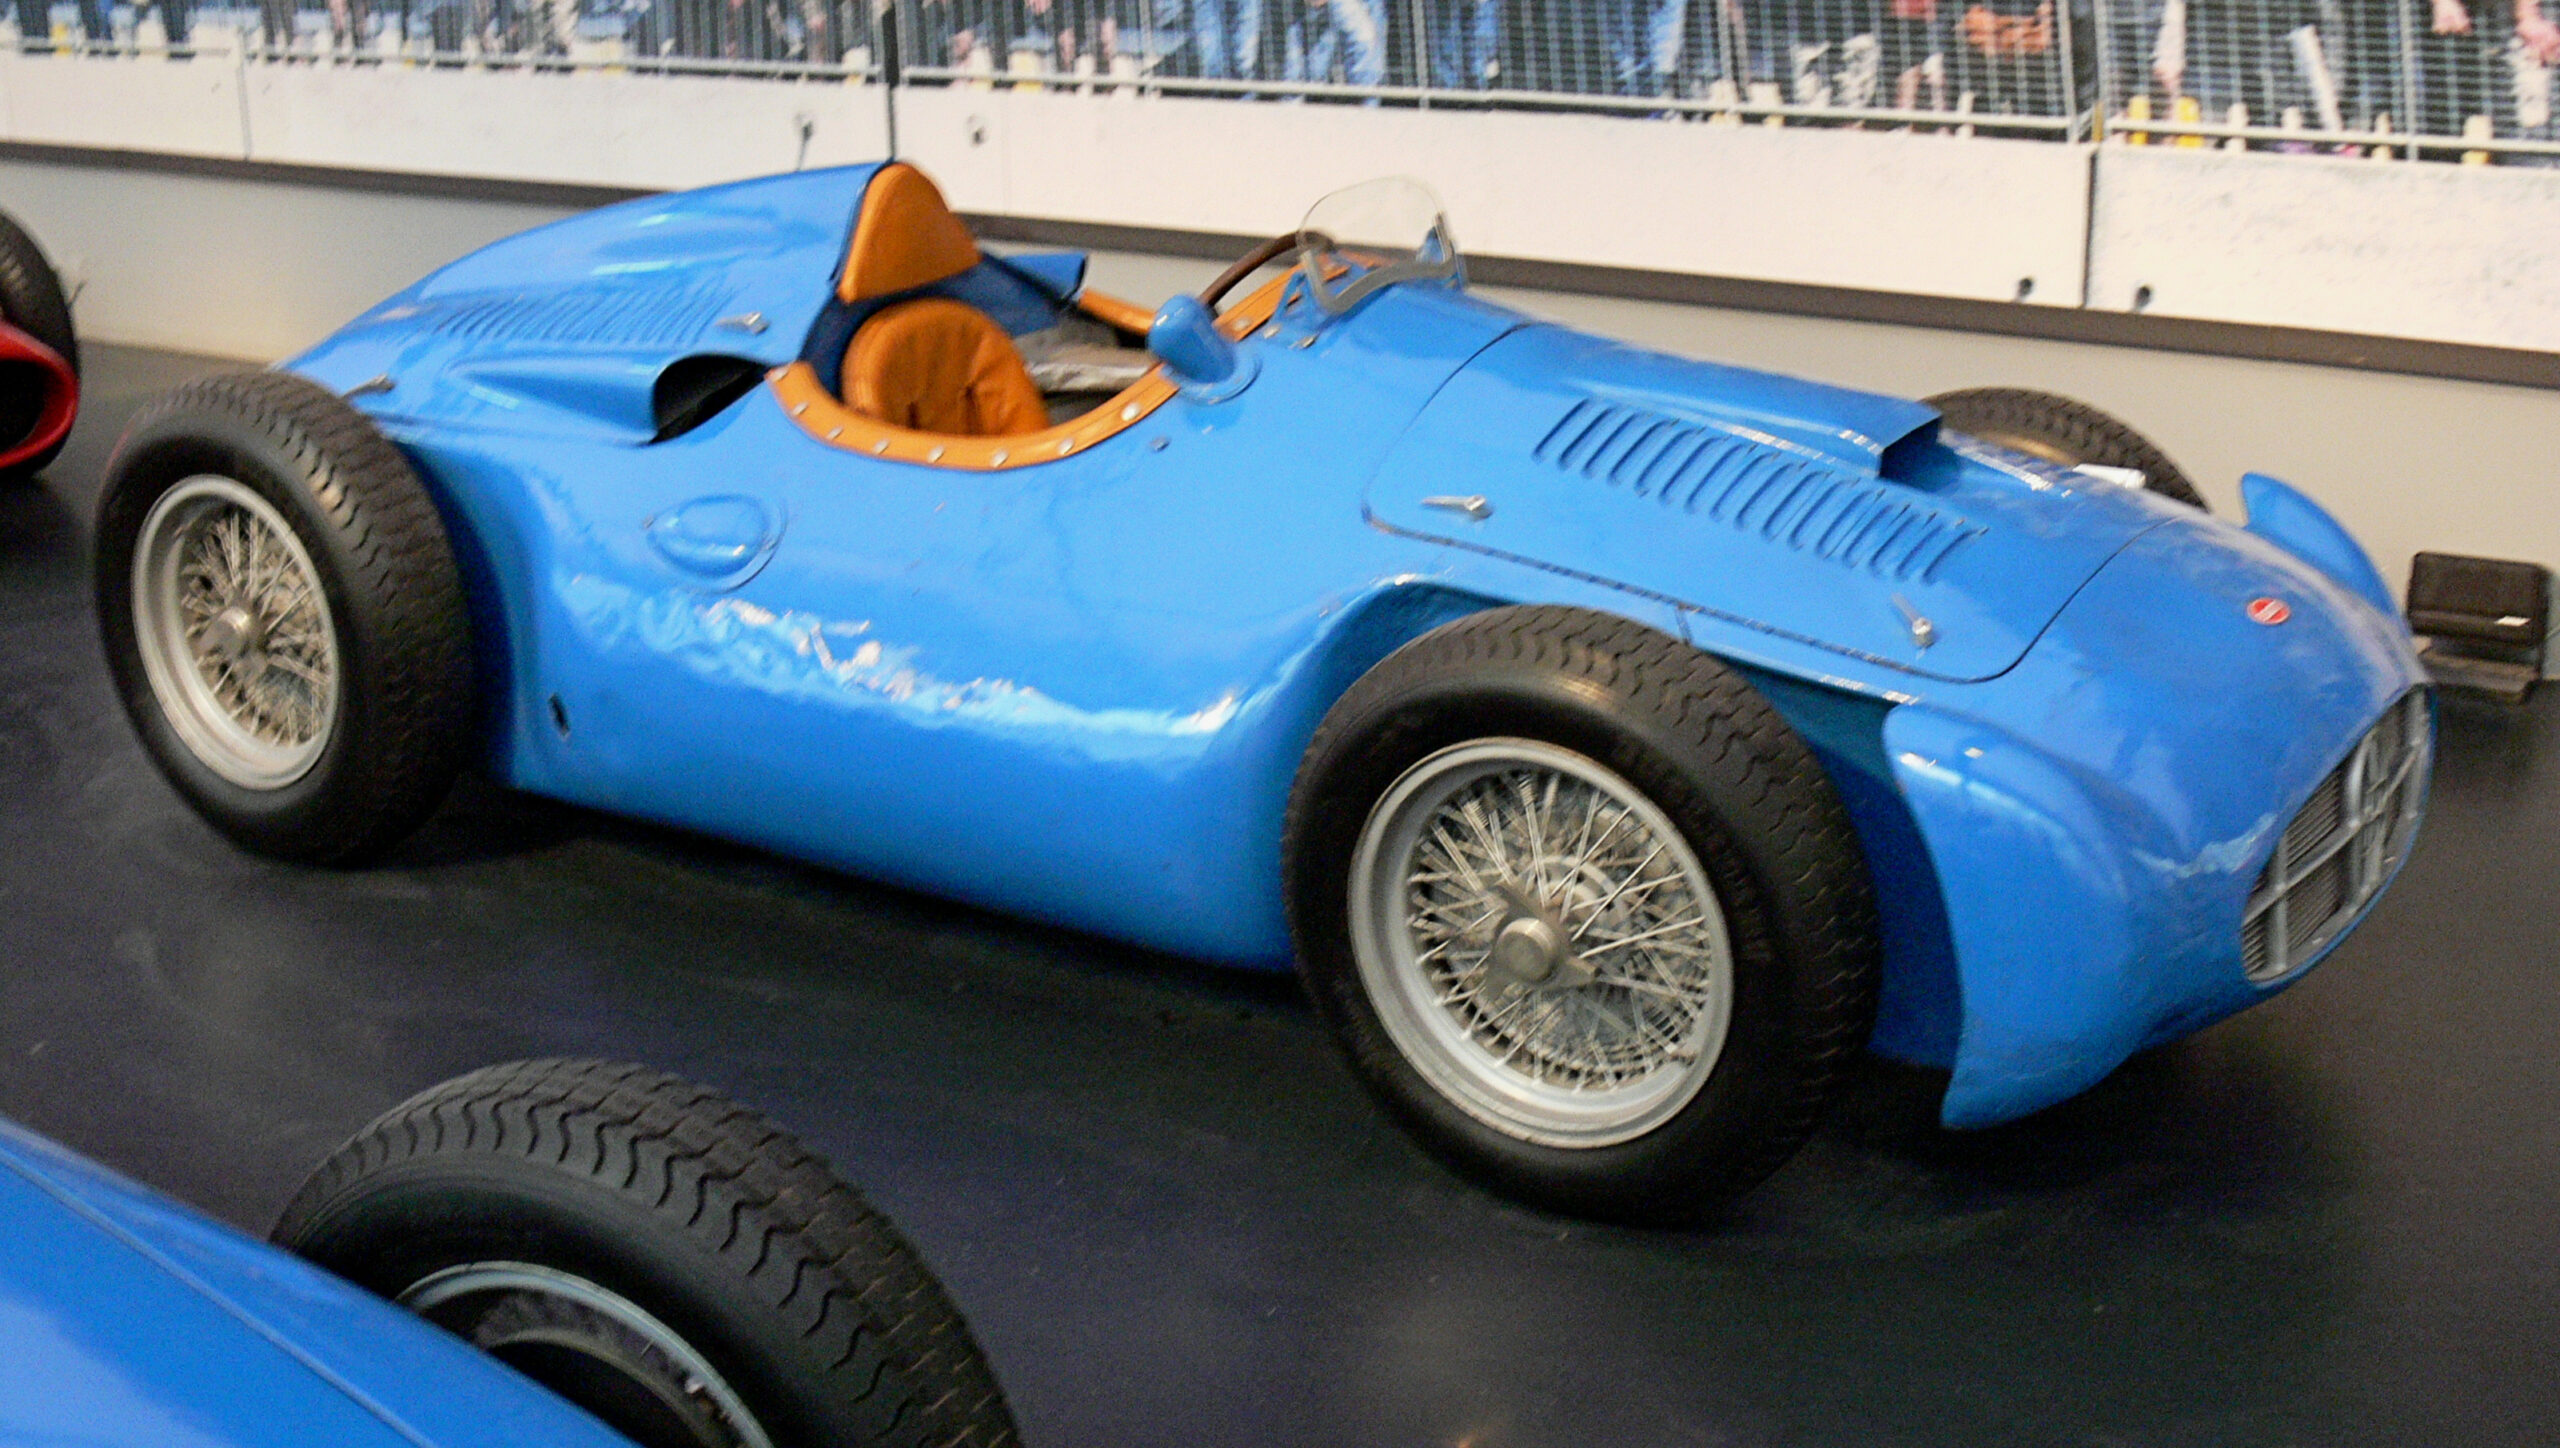 The 1955 Bugatti Type 251 Race Car